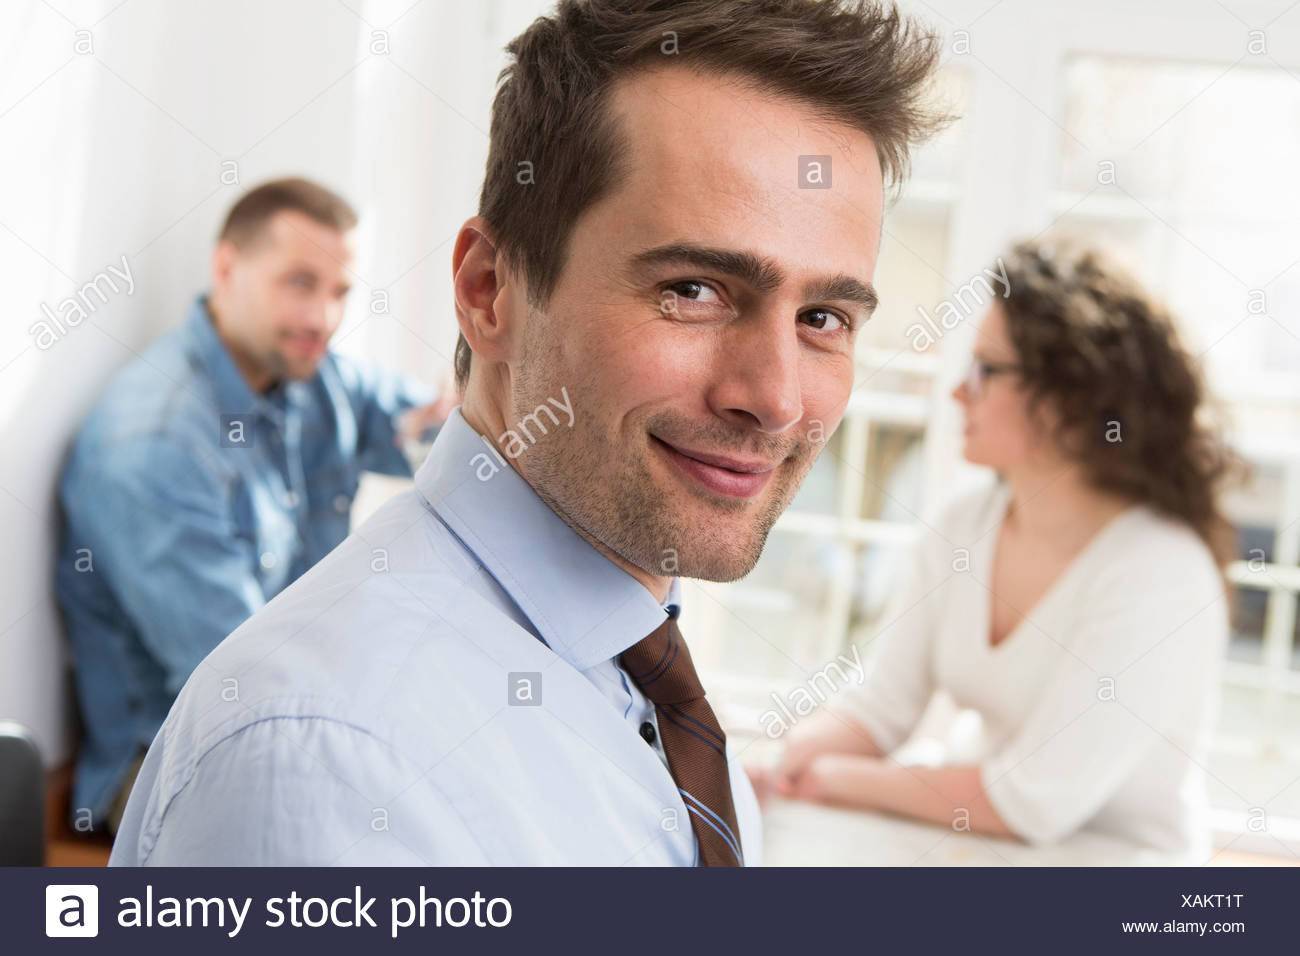 Mature man smiling at camera, mid adults in background - Stock Image